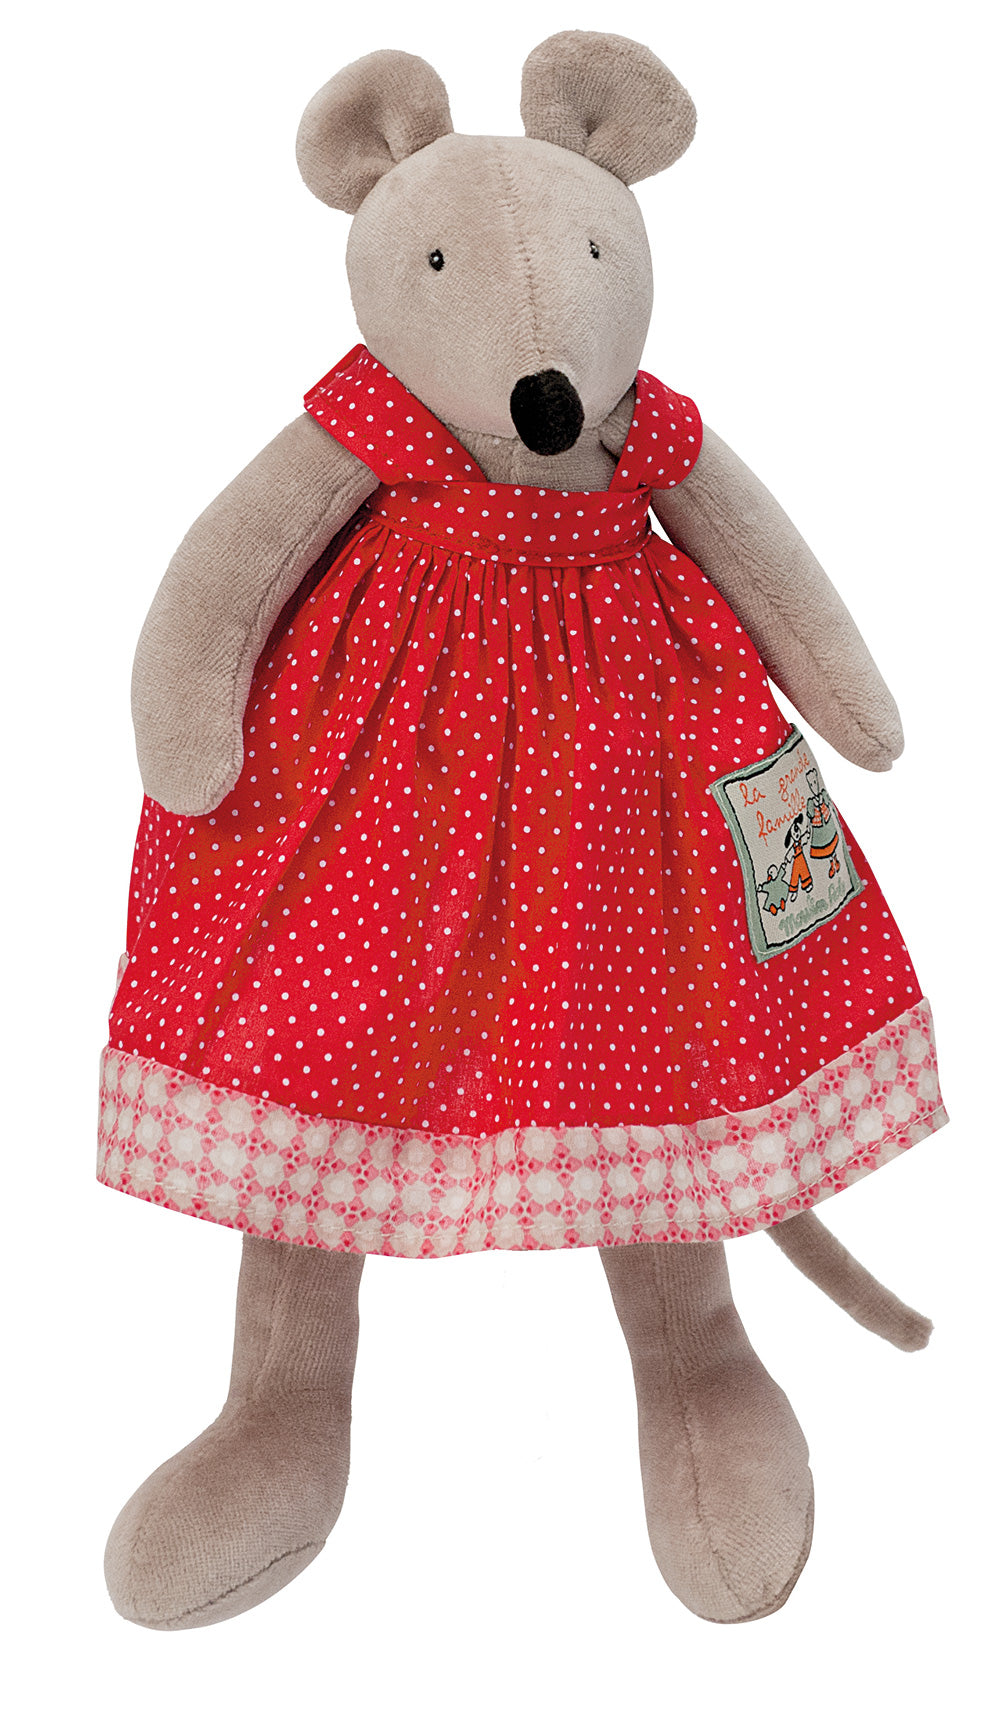 Moulin Roty | Cotton Soft Toy | 'La Grande Famille' Nini The Mouse in Red Dress | Size: 30cm | Age: 0+